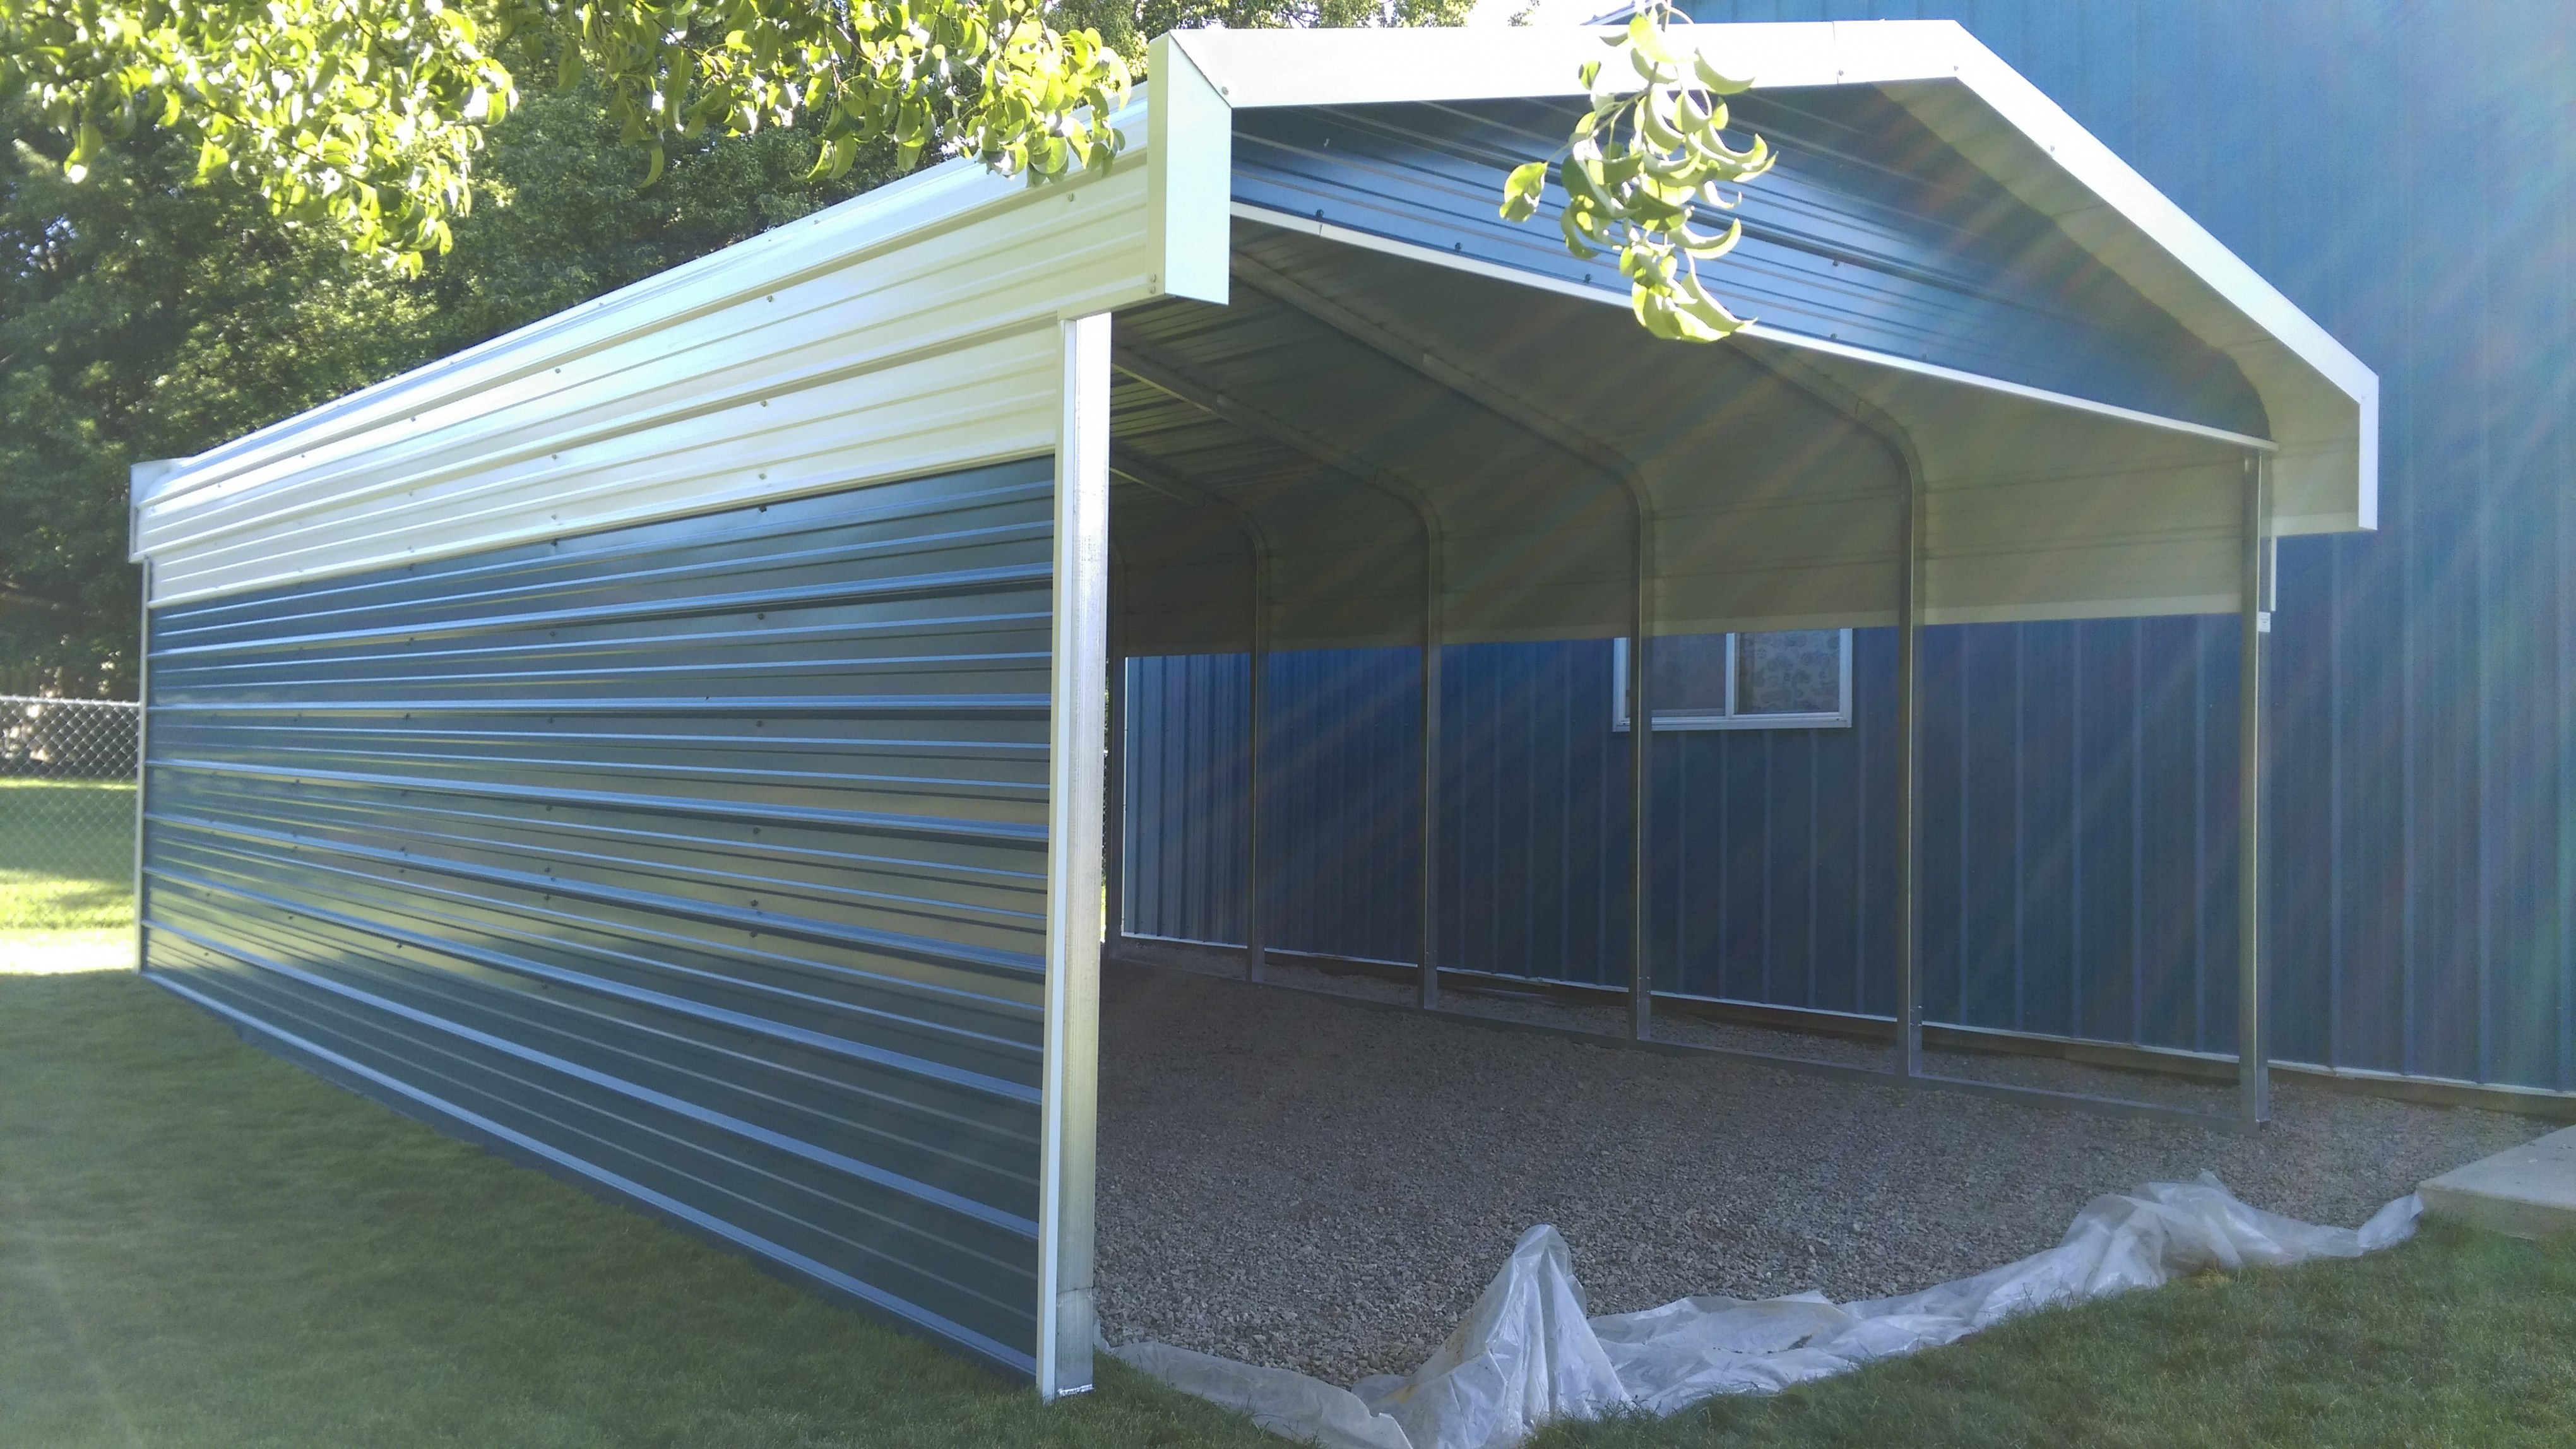 Never Underestimate The Influence Of Metal Sheds Carports | metal sheds carports